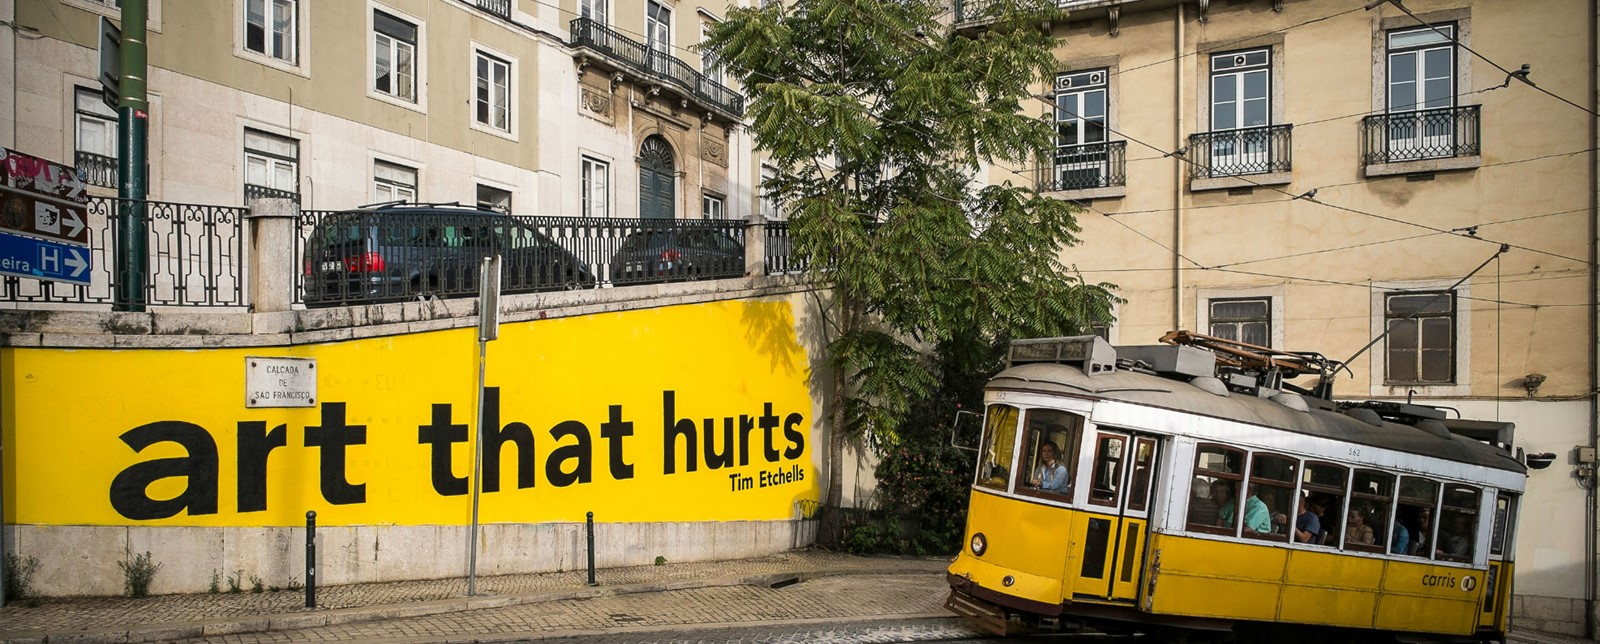 Street art reading 'that hurts' by Tim Etchells